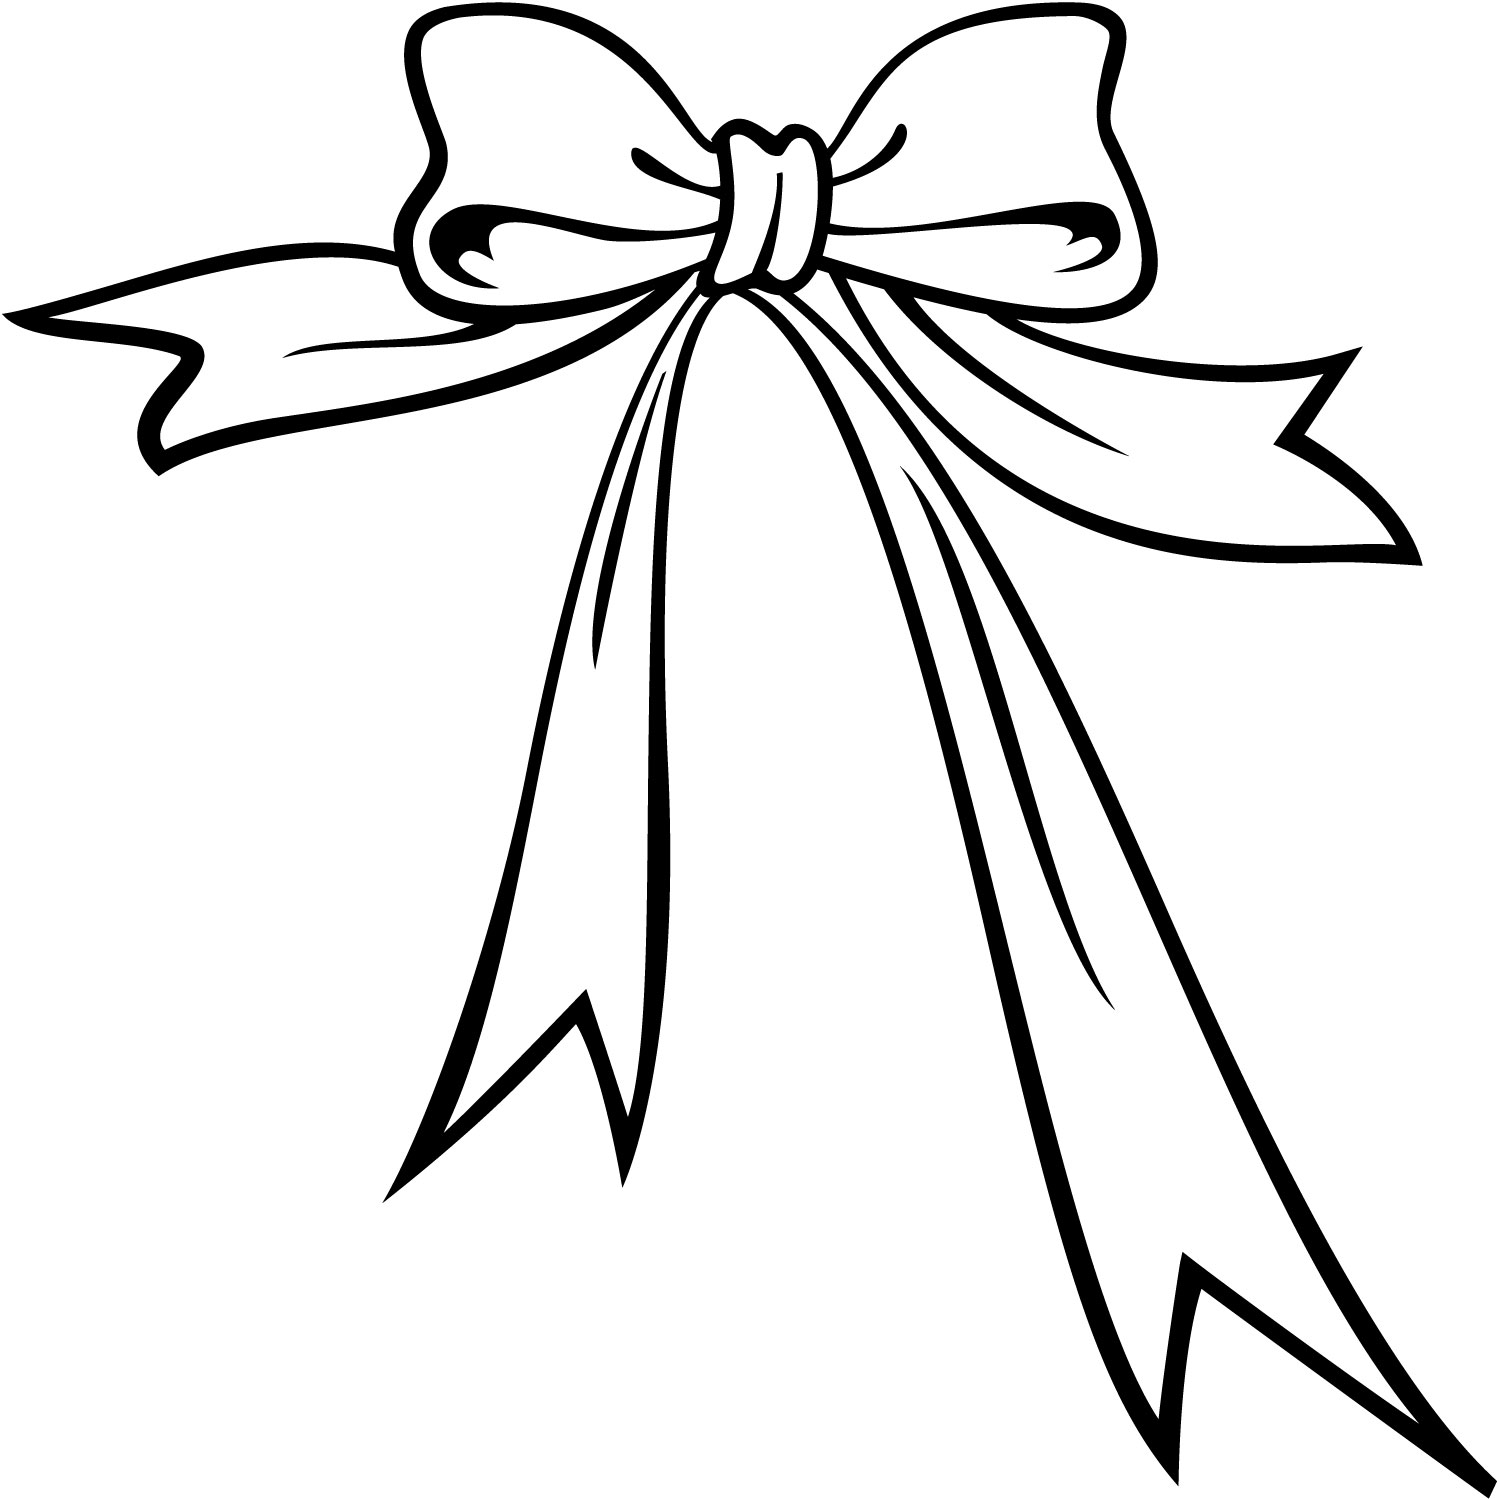 Free Bow Clip Art Pictures